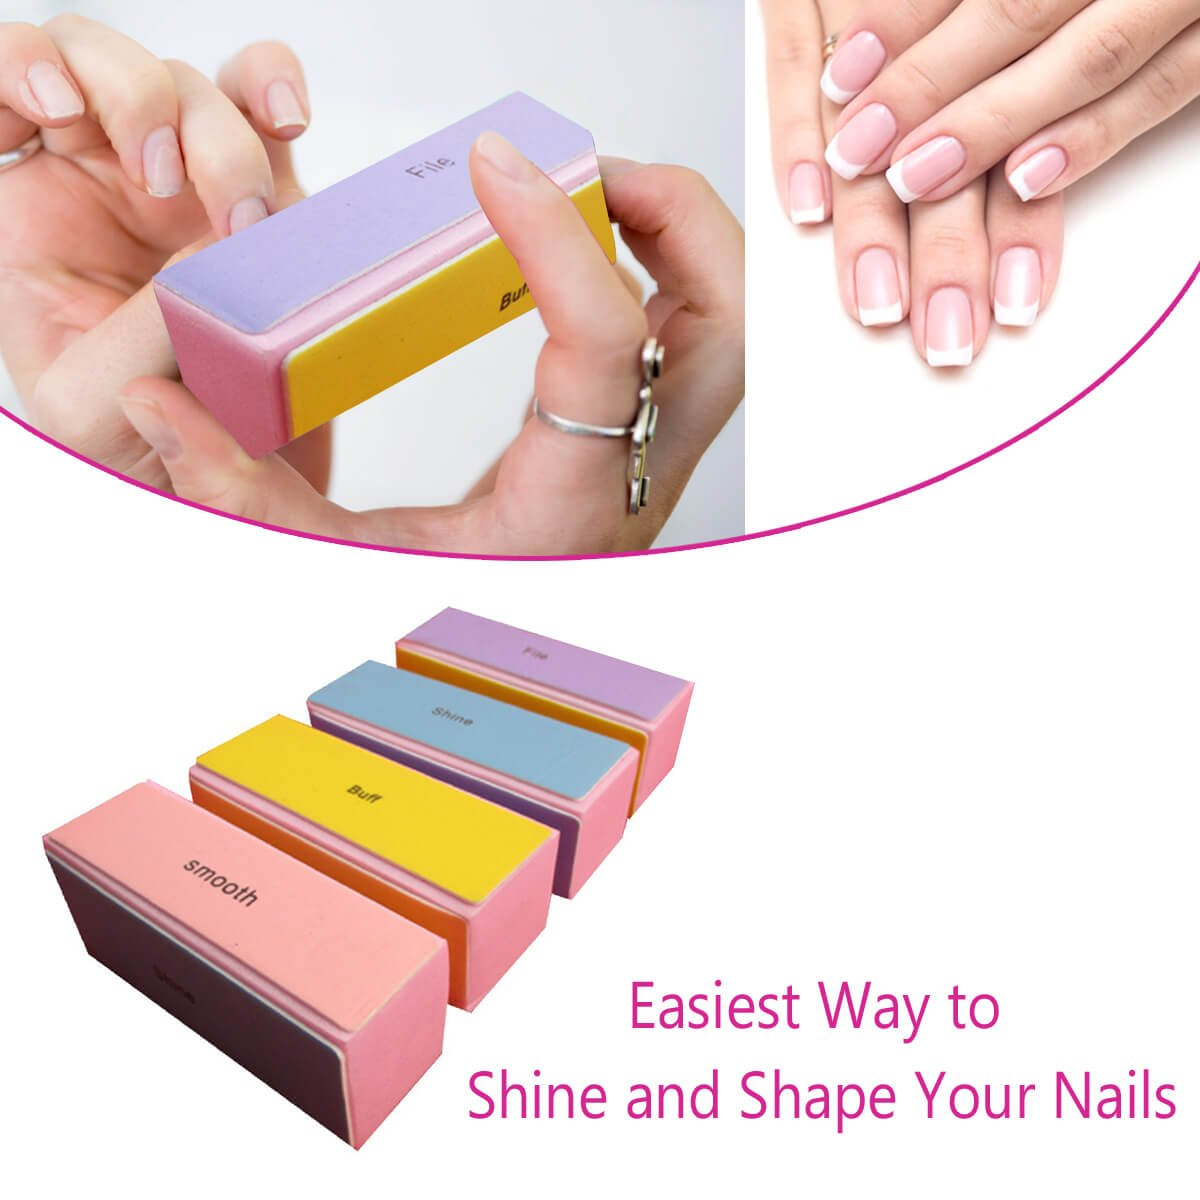 4 Way Nail Buffer Blocks - For Everlasting Nail Beauty - Safe For Your Nails (1 Pack of 4 Pieces) Schöne Products (UK)